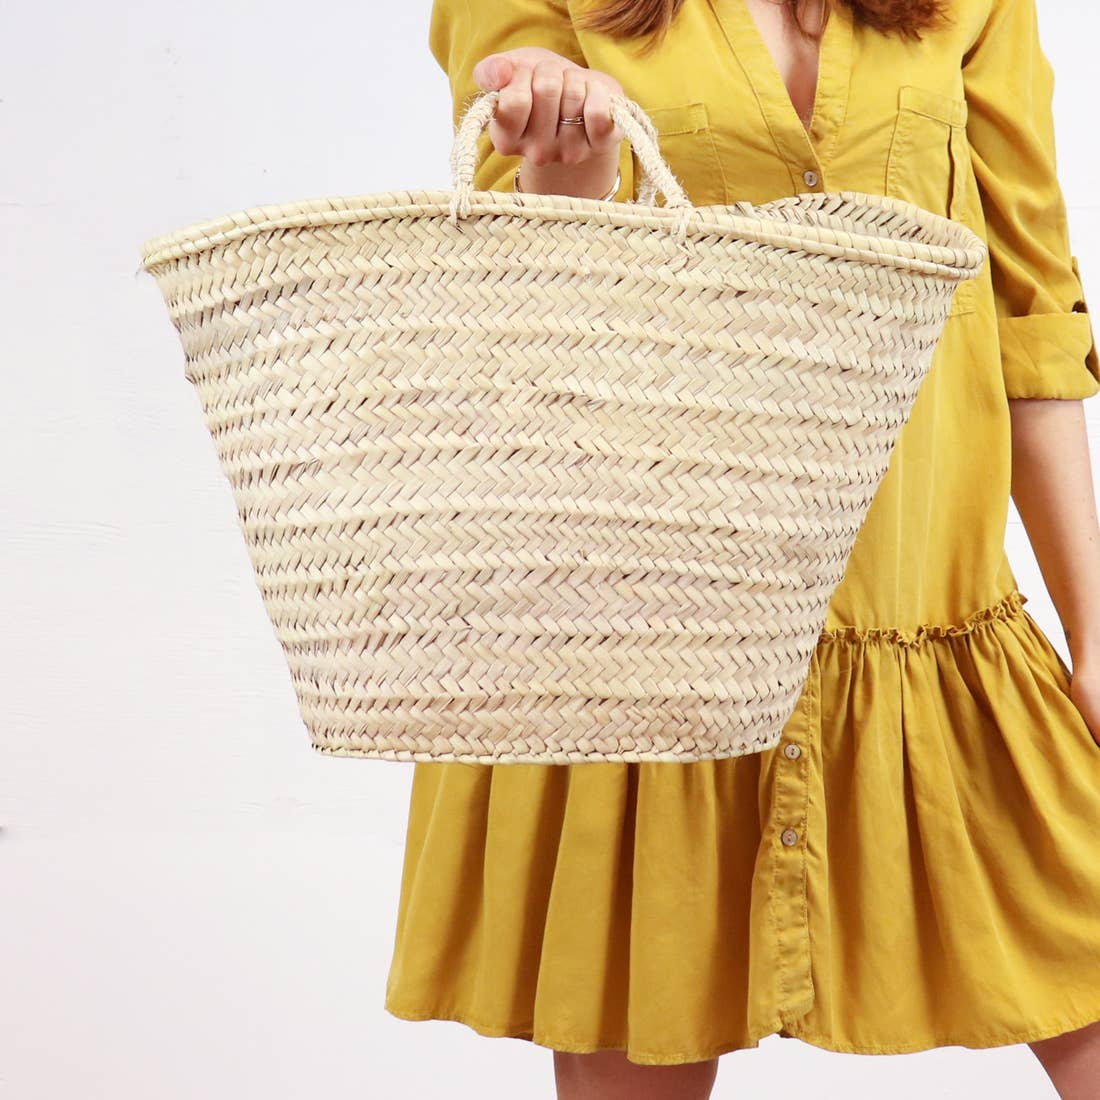 Venice Straw French Basket, Long Leather Handles